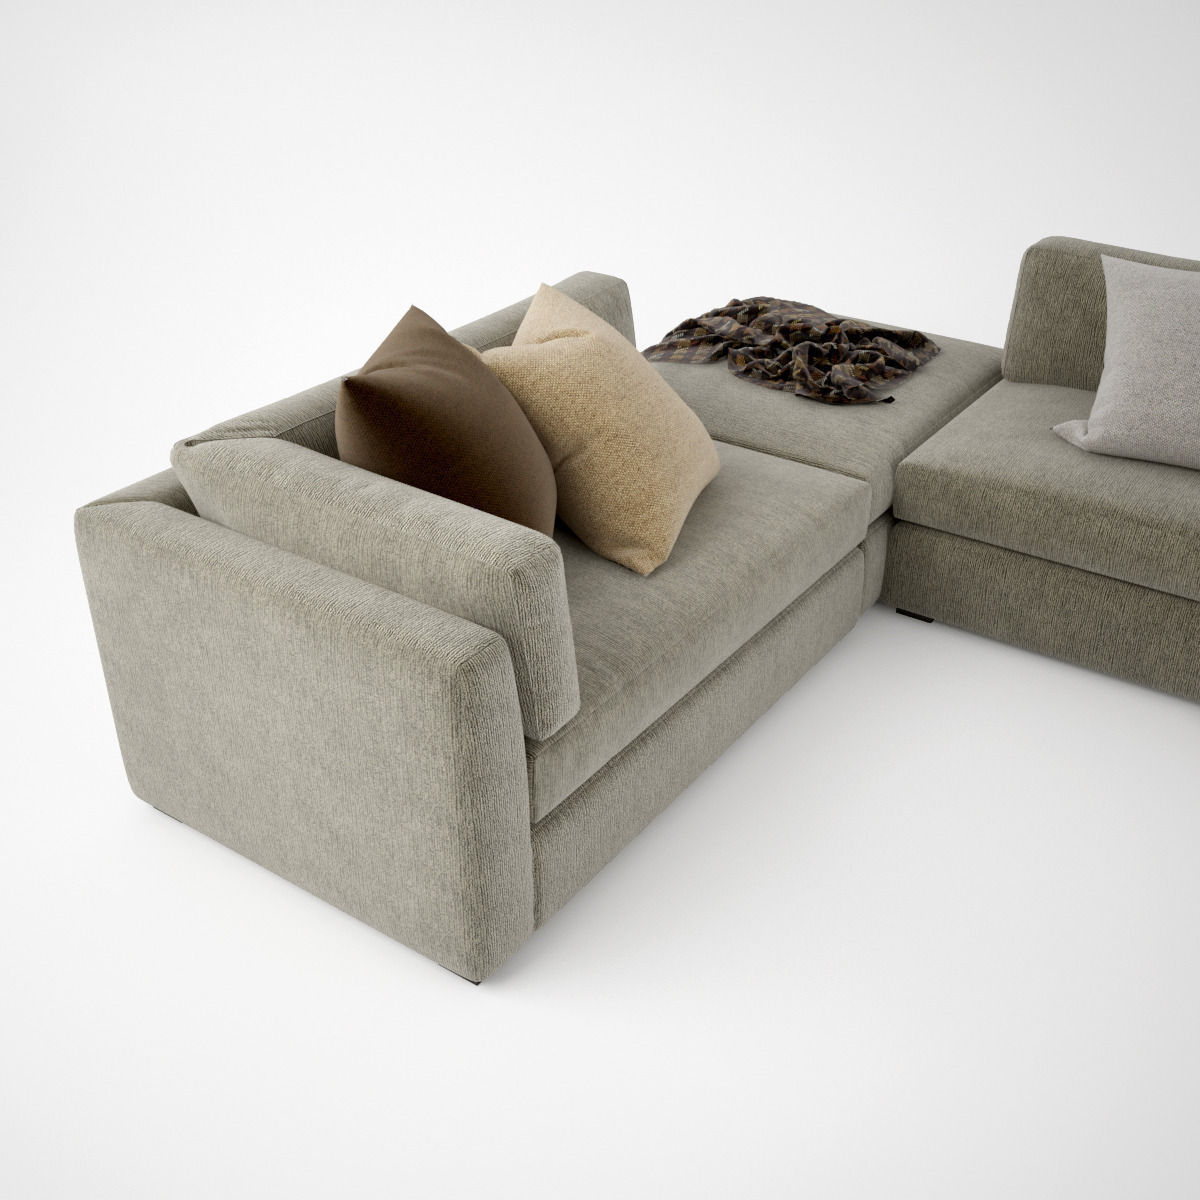 ... busnelli oh-mar corner sectional sofa 3d model max obj fbx 7 ... : corner sectional chair - Sectionals, Sofas & Couches